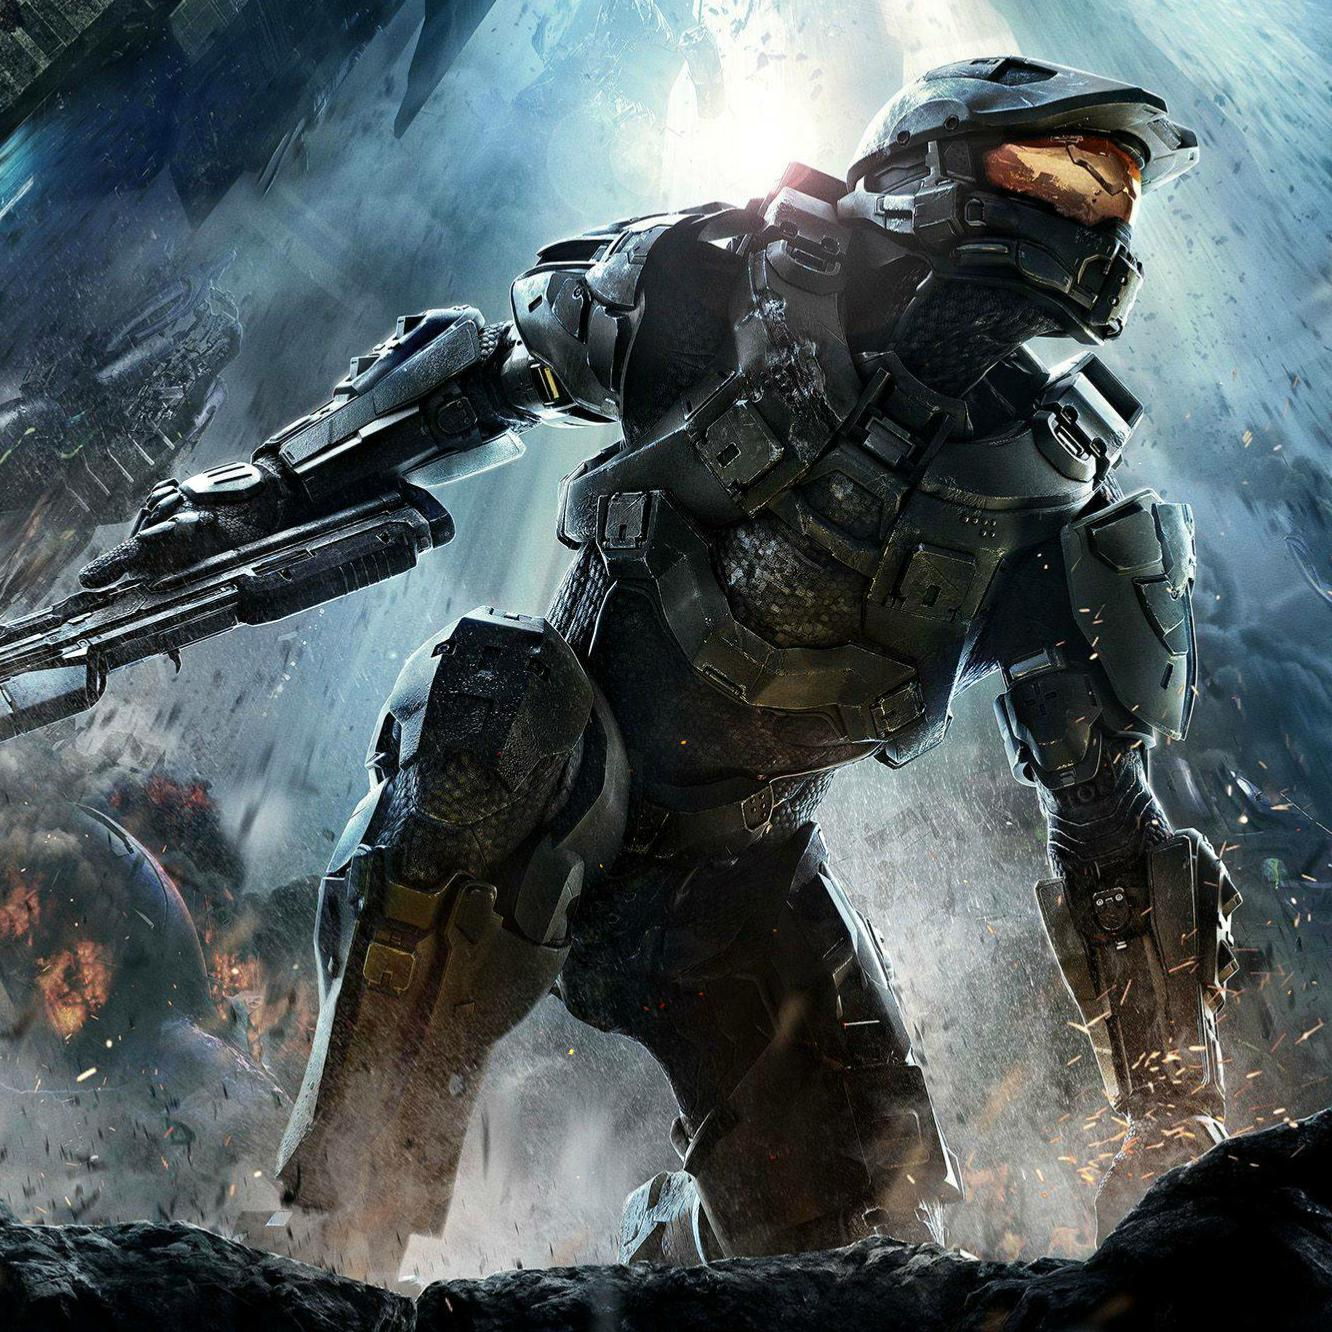 Halo Wallpaper Engine